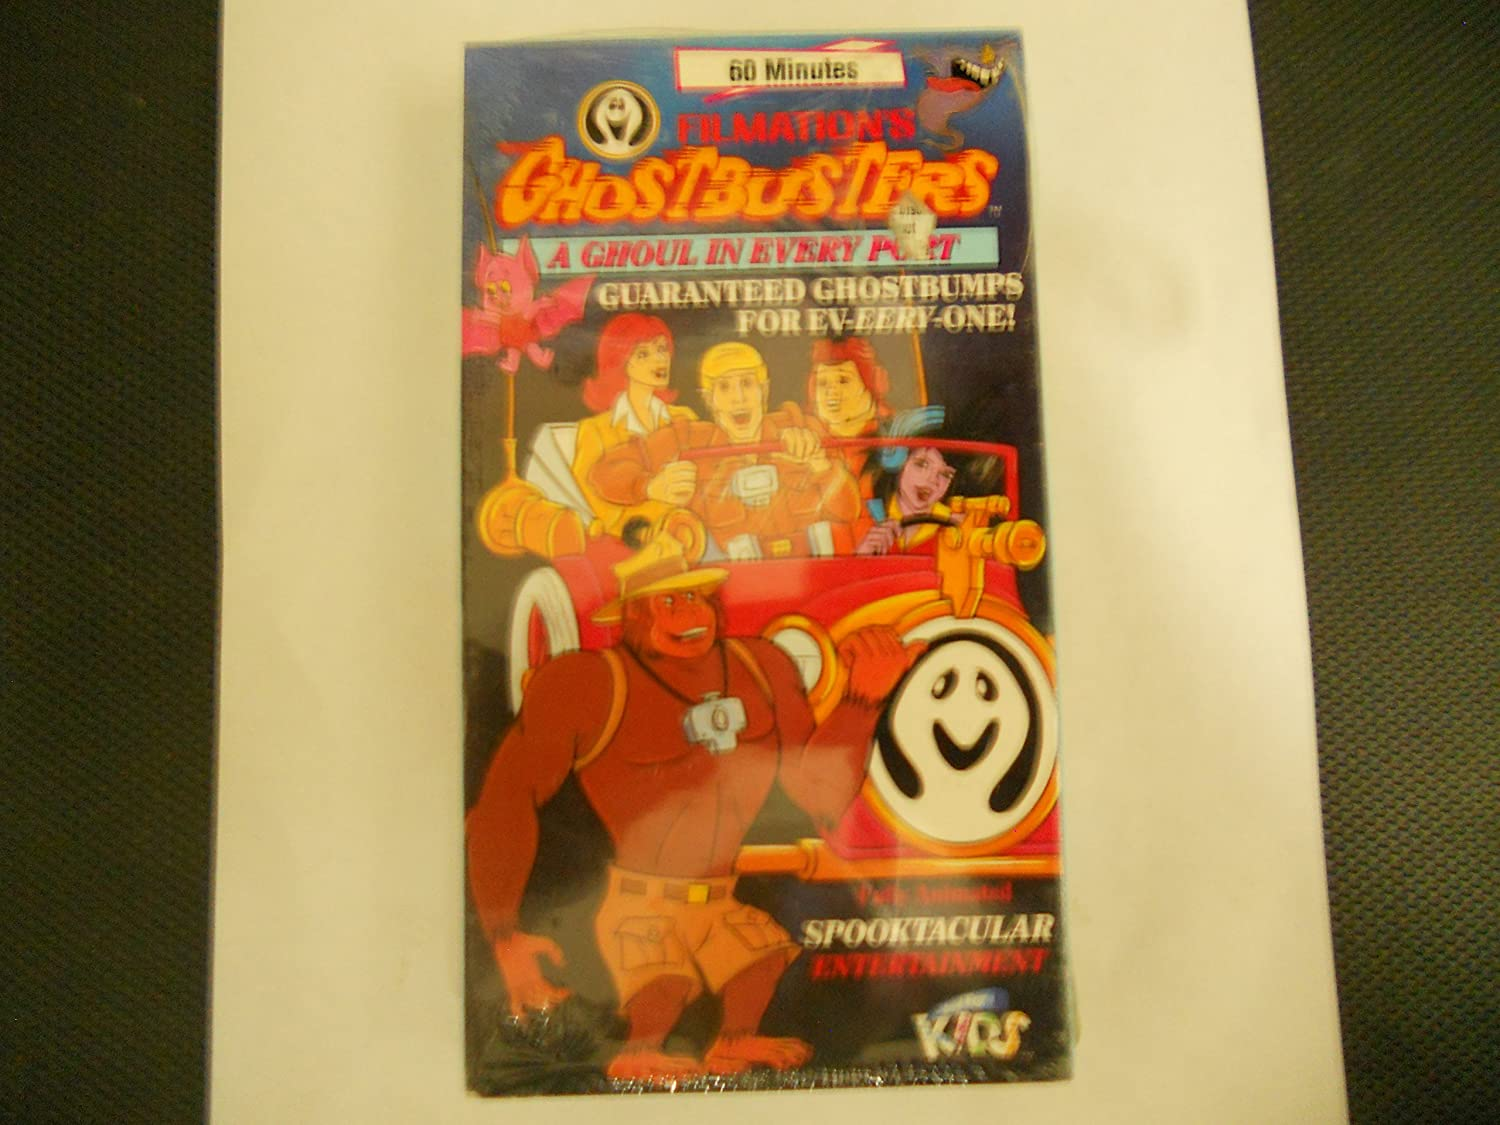 Ghostbusters: A Ghoul in Every Port [VHS]